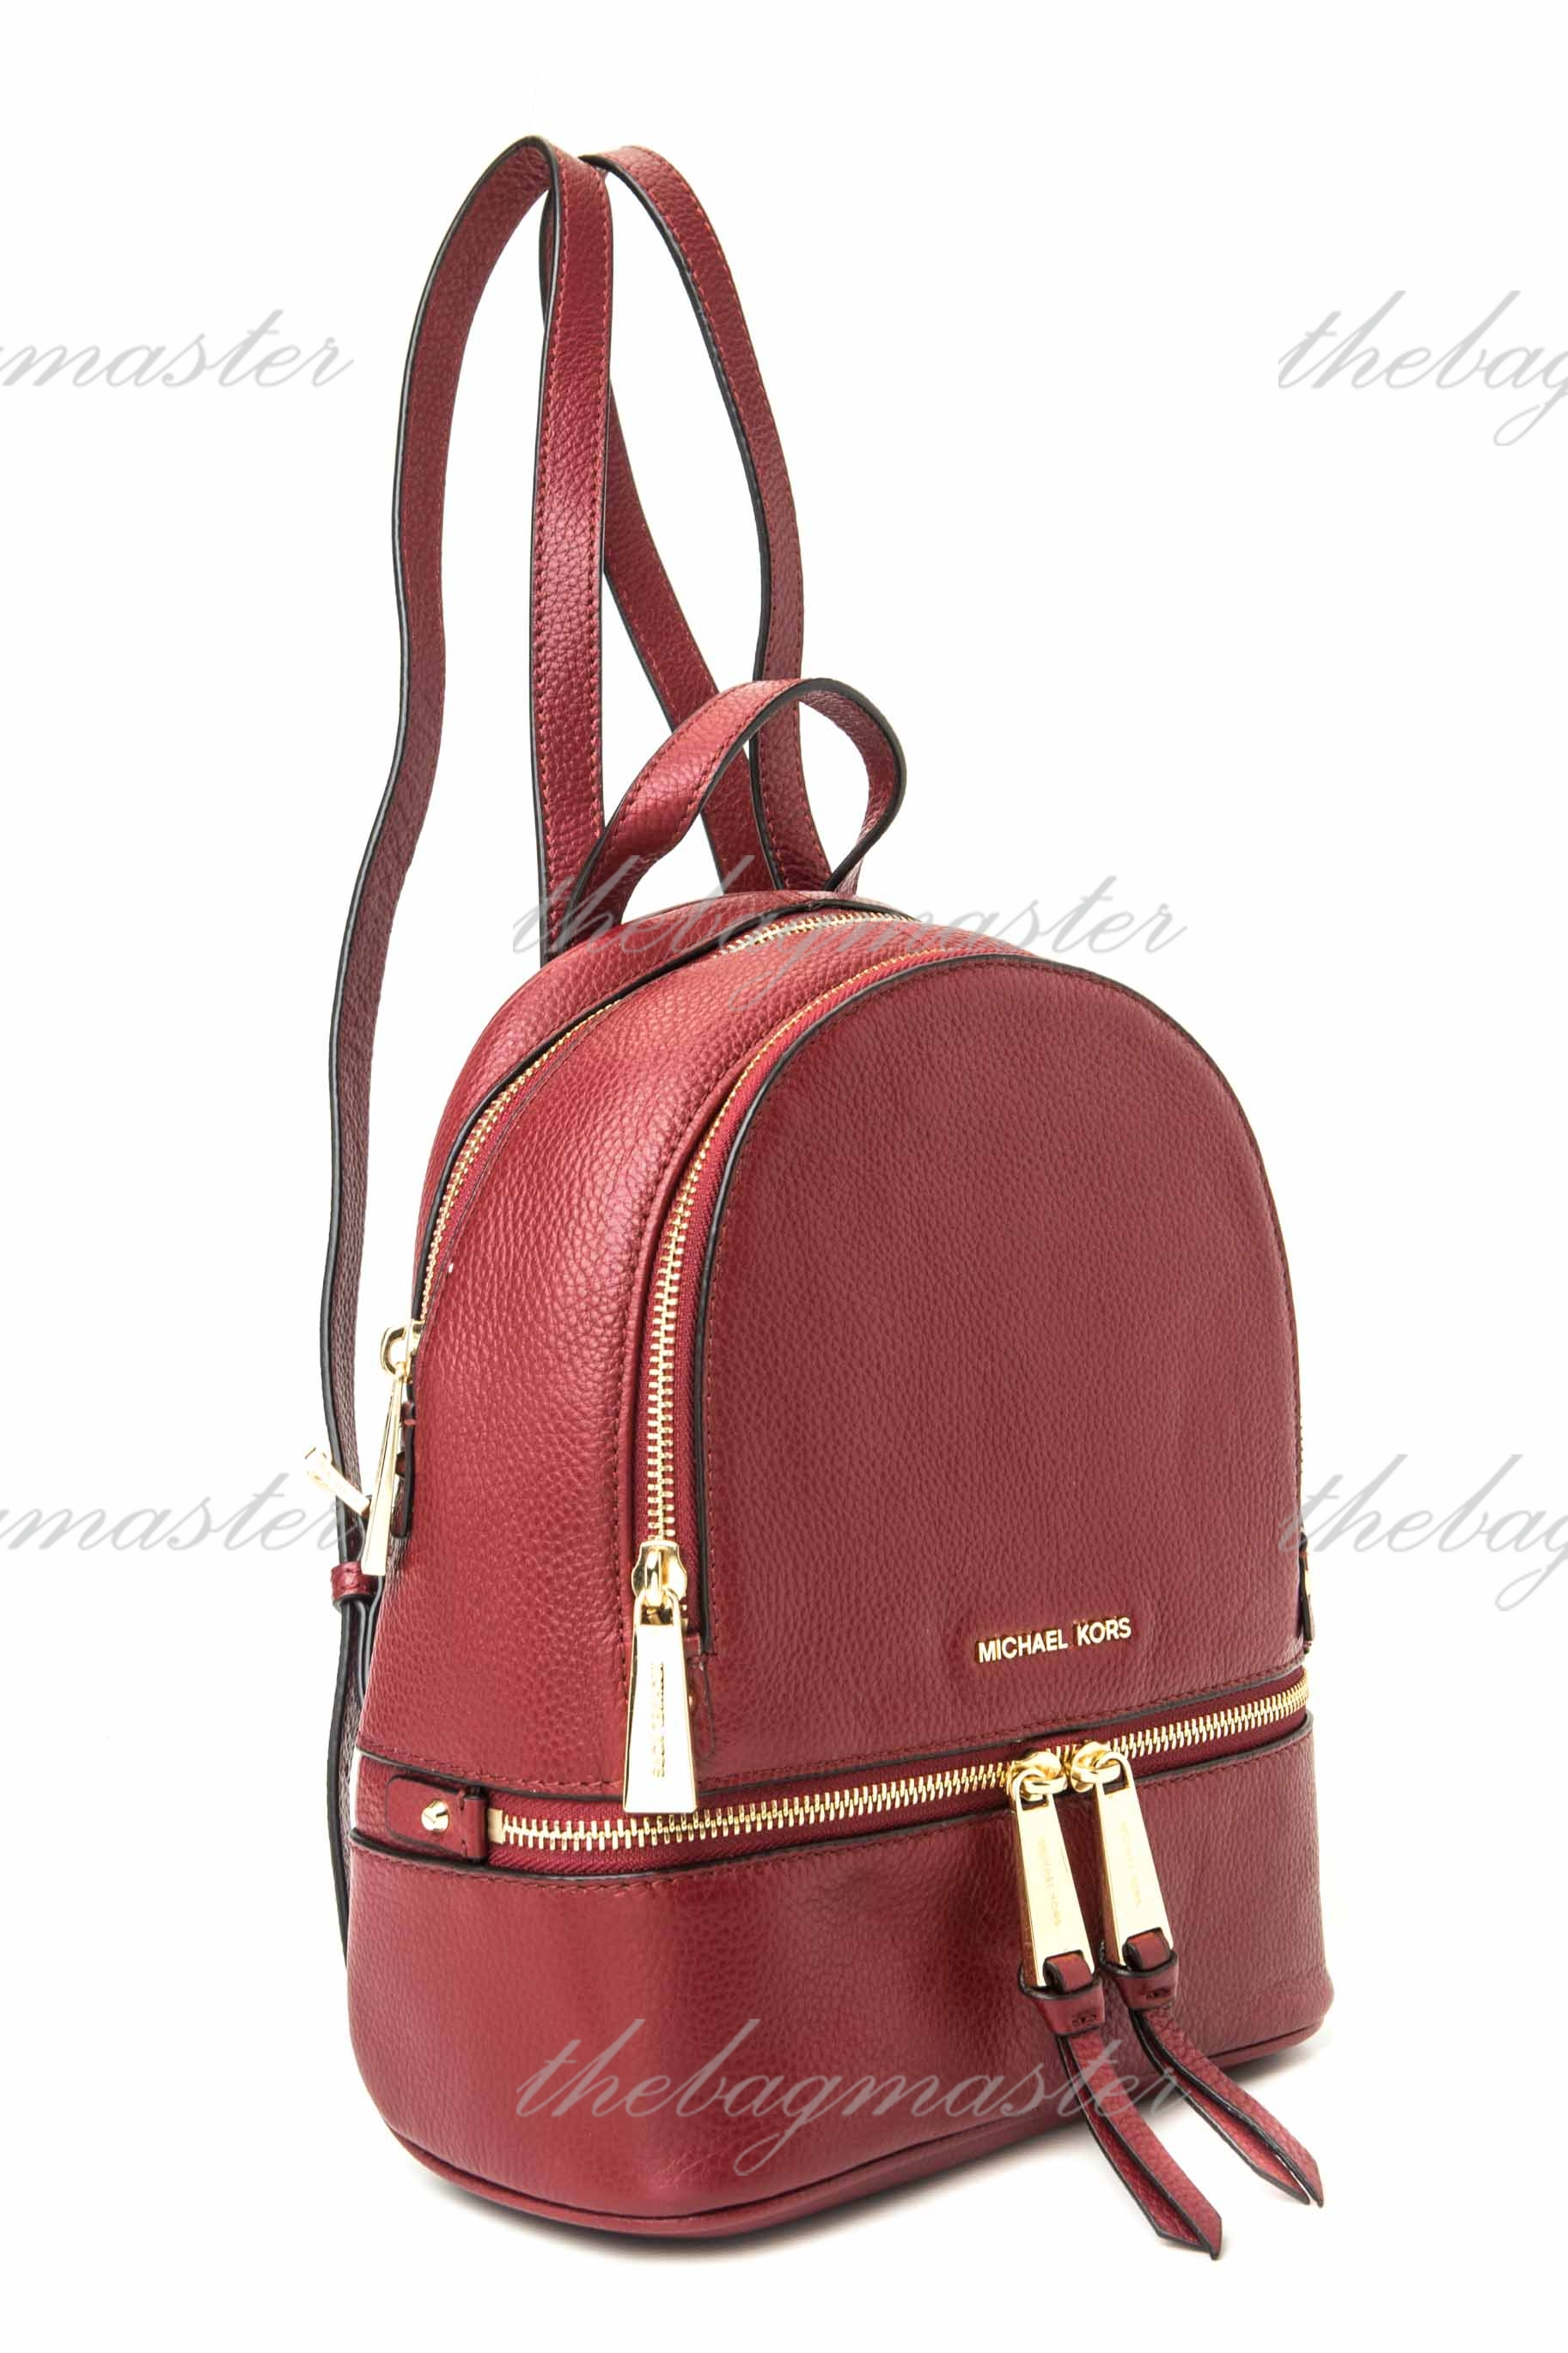 Michael Kors Rhea Small Leather Backpack - Red Wine — The ...